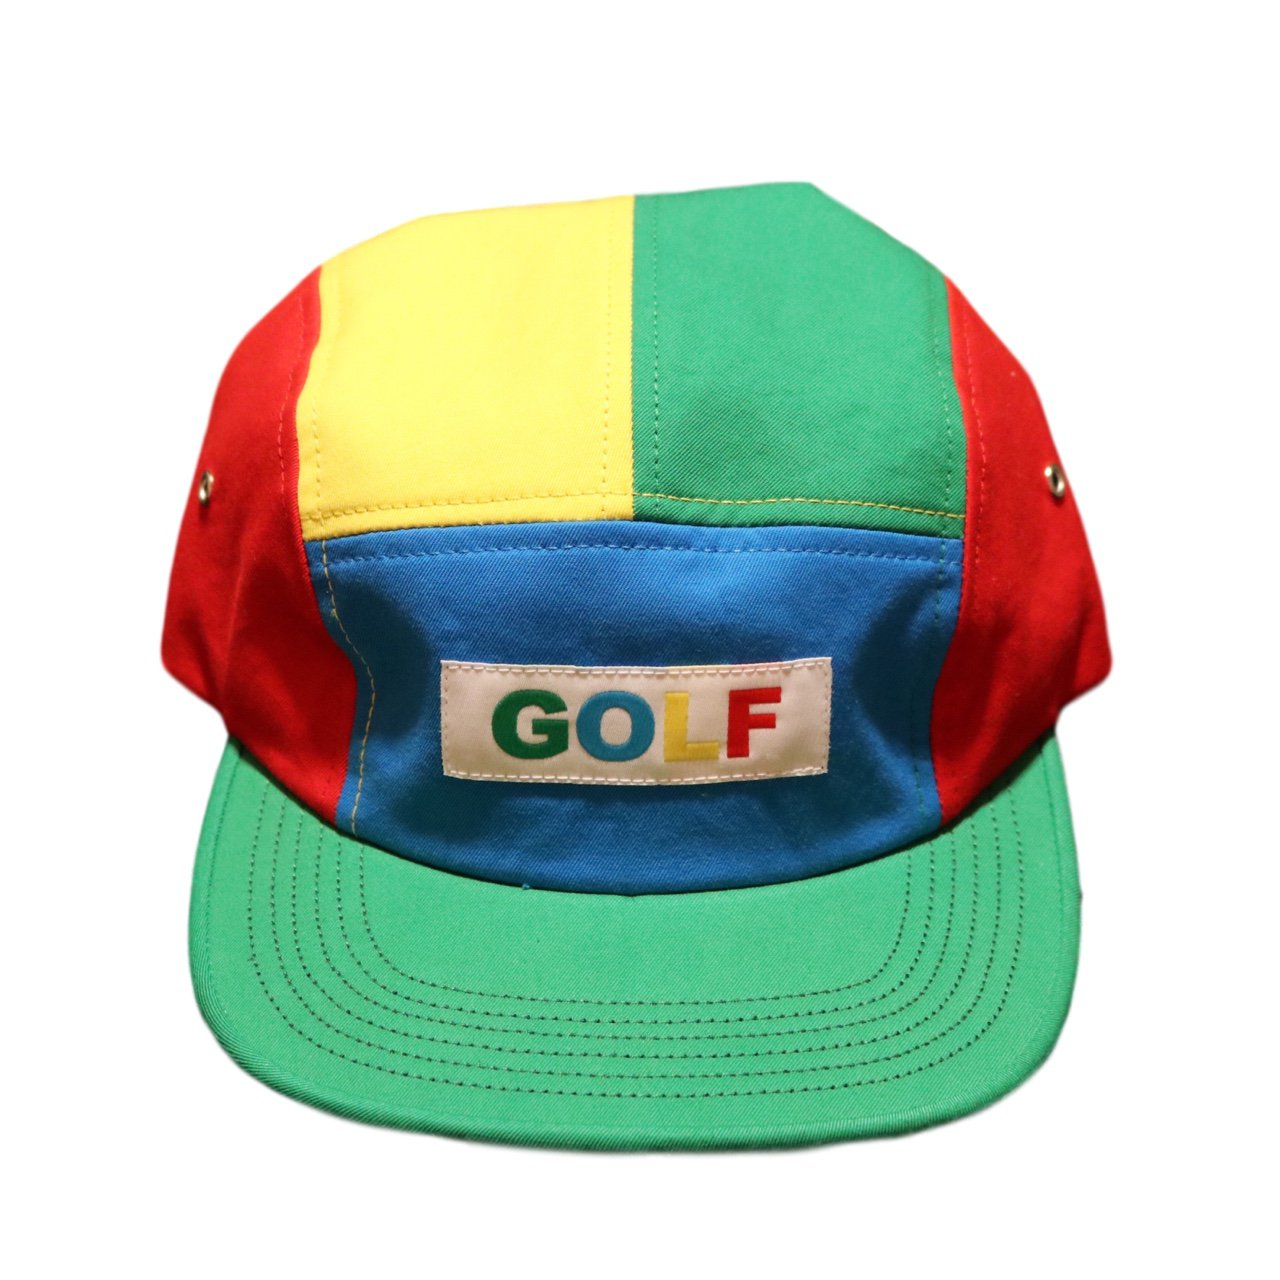 GOLF WANG multi color camp hat. DS condition. brand new  45 - Depop 24f4cfd6ac7